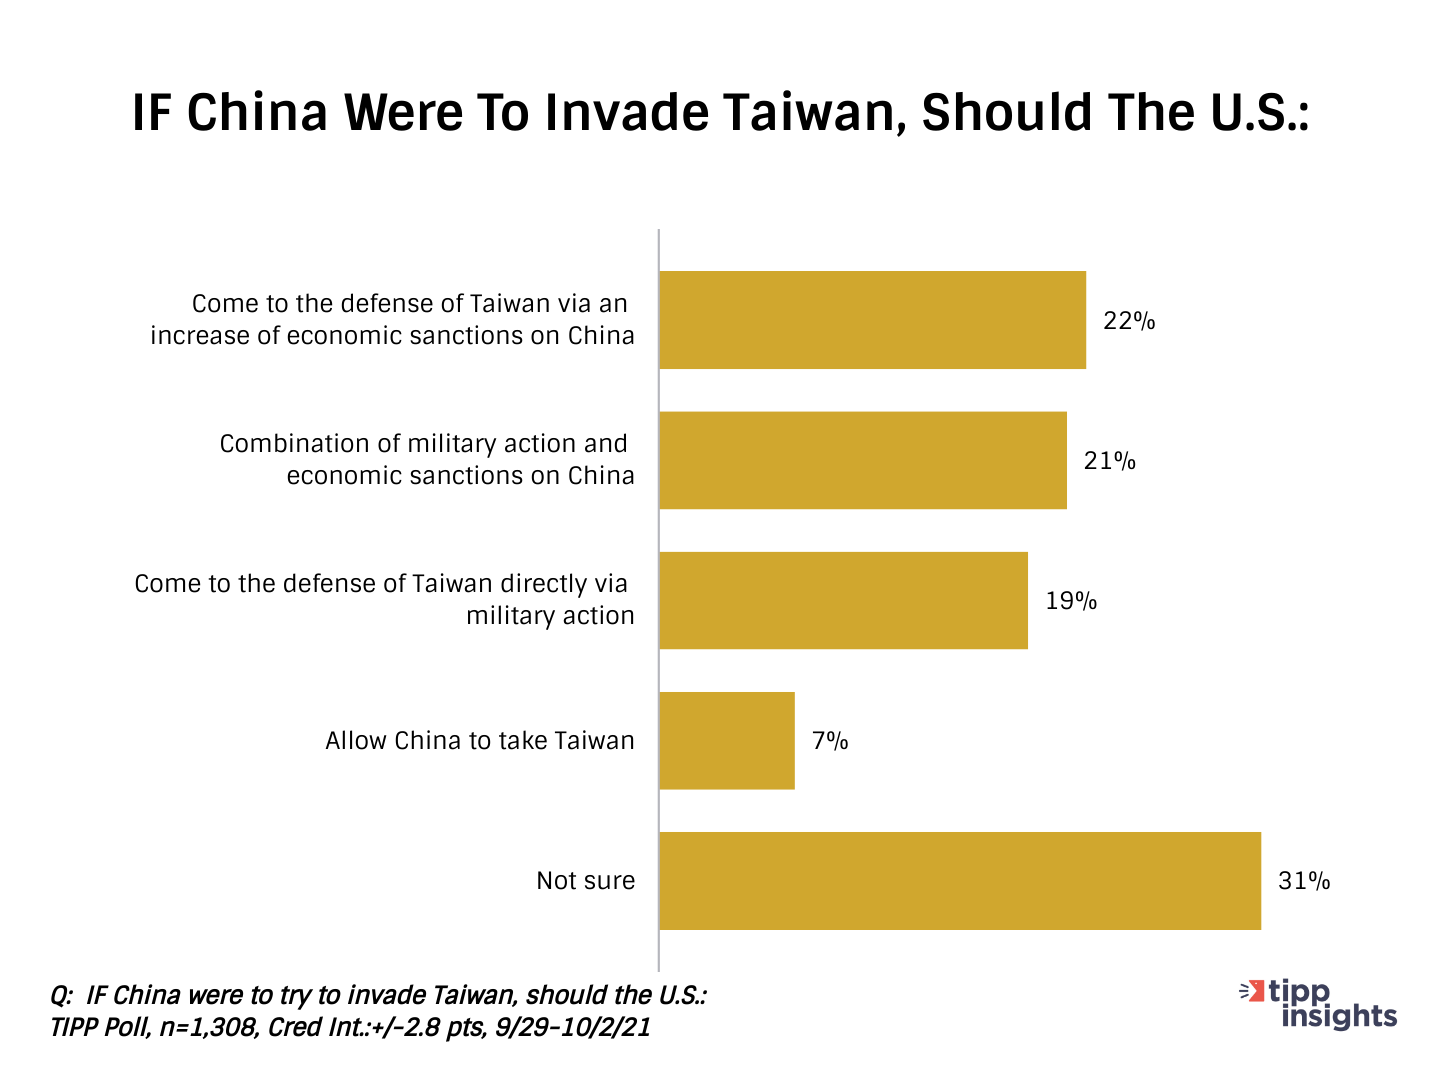 TIPP Poll Results: Americans being asked how should the U.S respond if China were to invade Taiwan chart